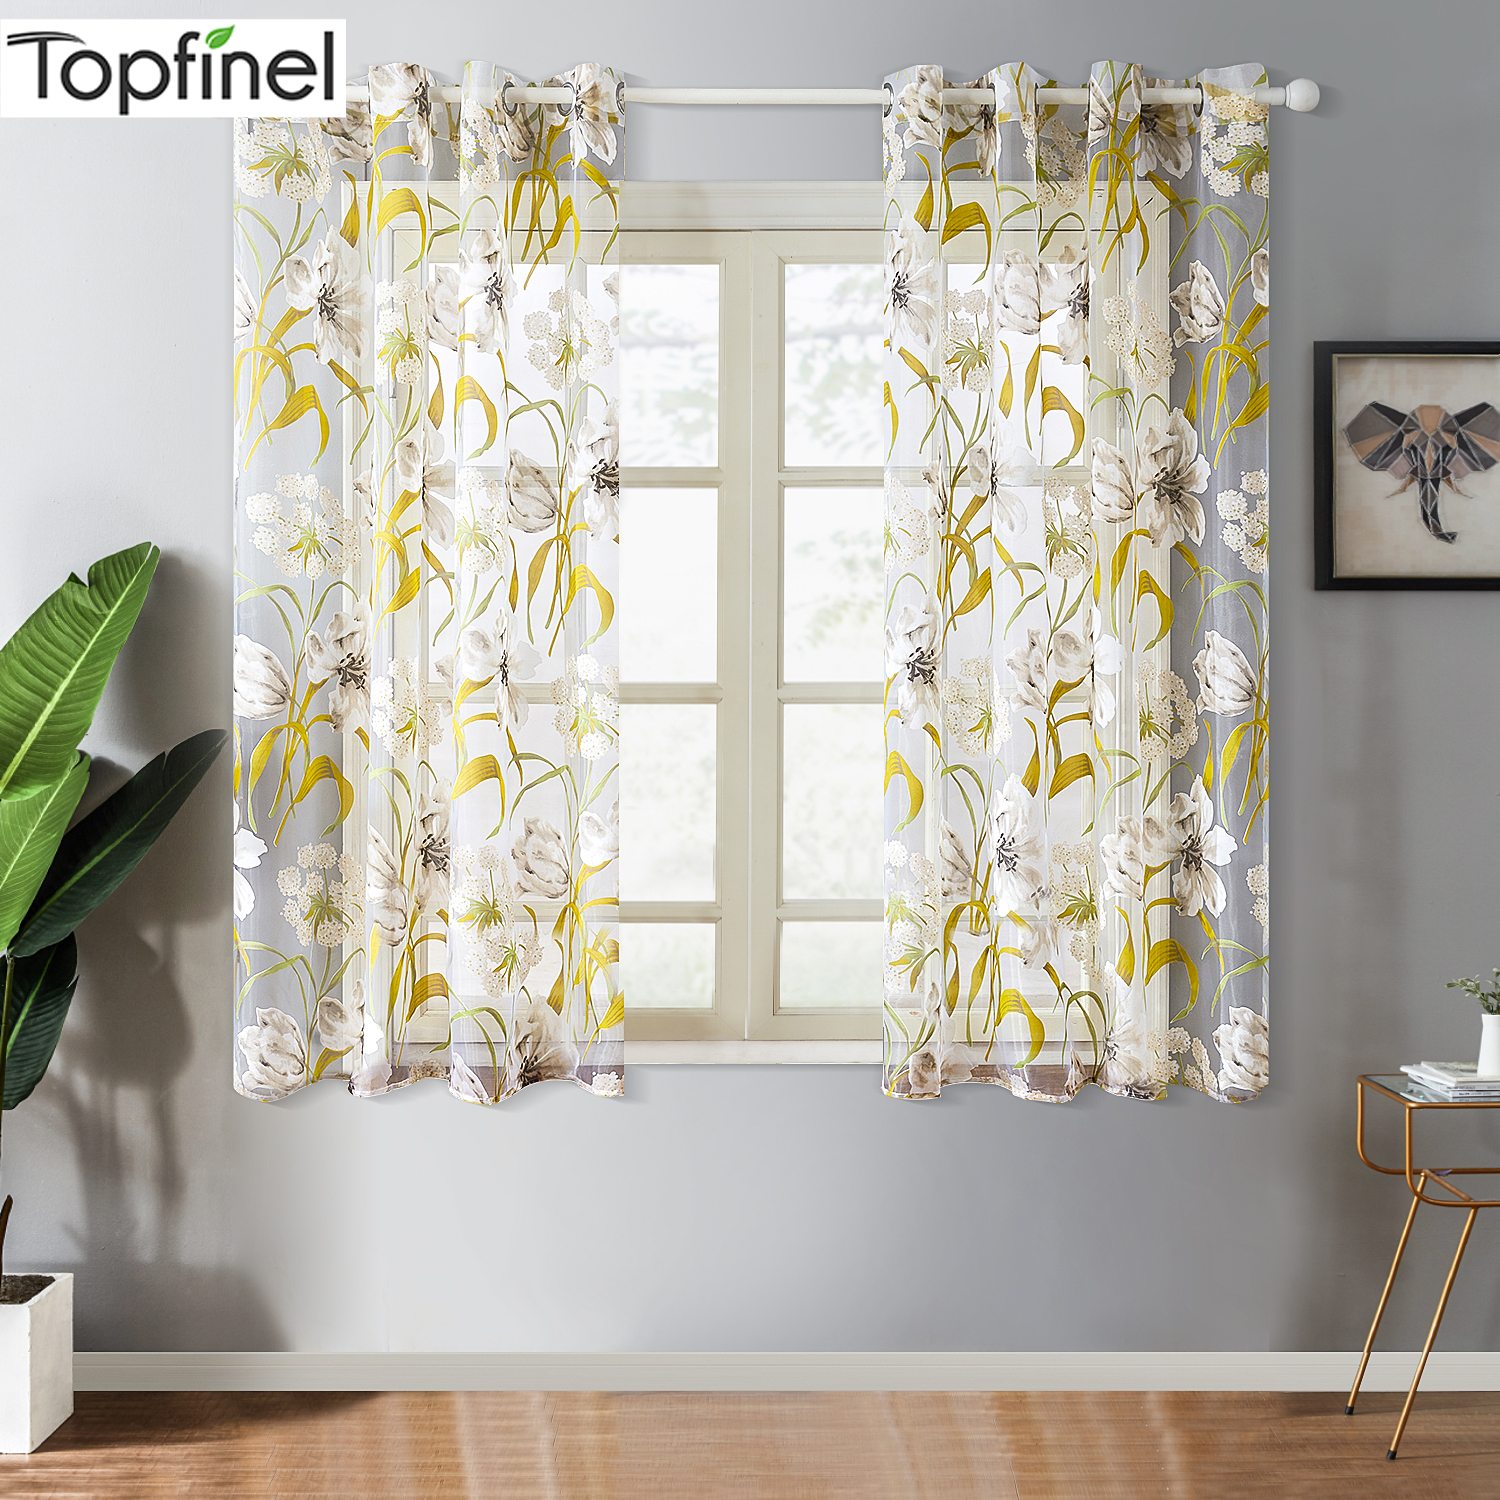 Topfinel Short Tulle Tropical Floral Sheer Curtains for Living Room Kitchen Bath Room Door Printed Window Treatment Curtains